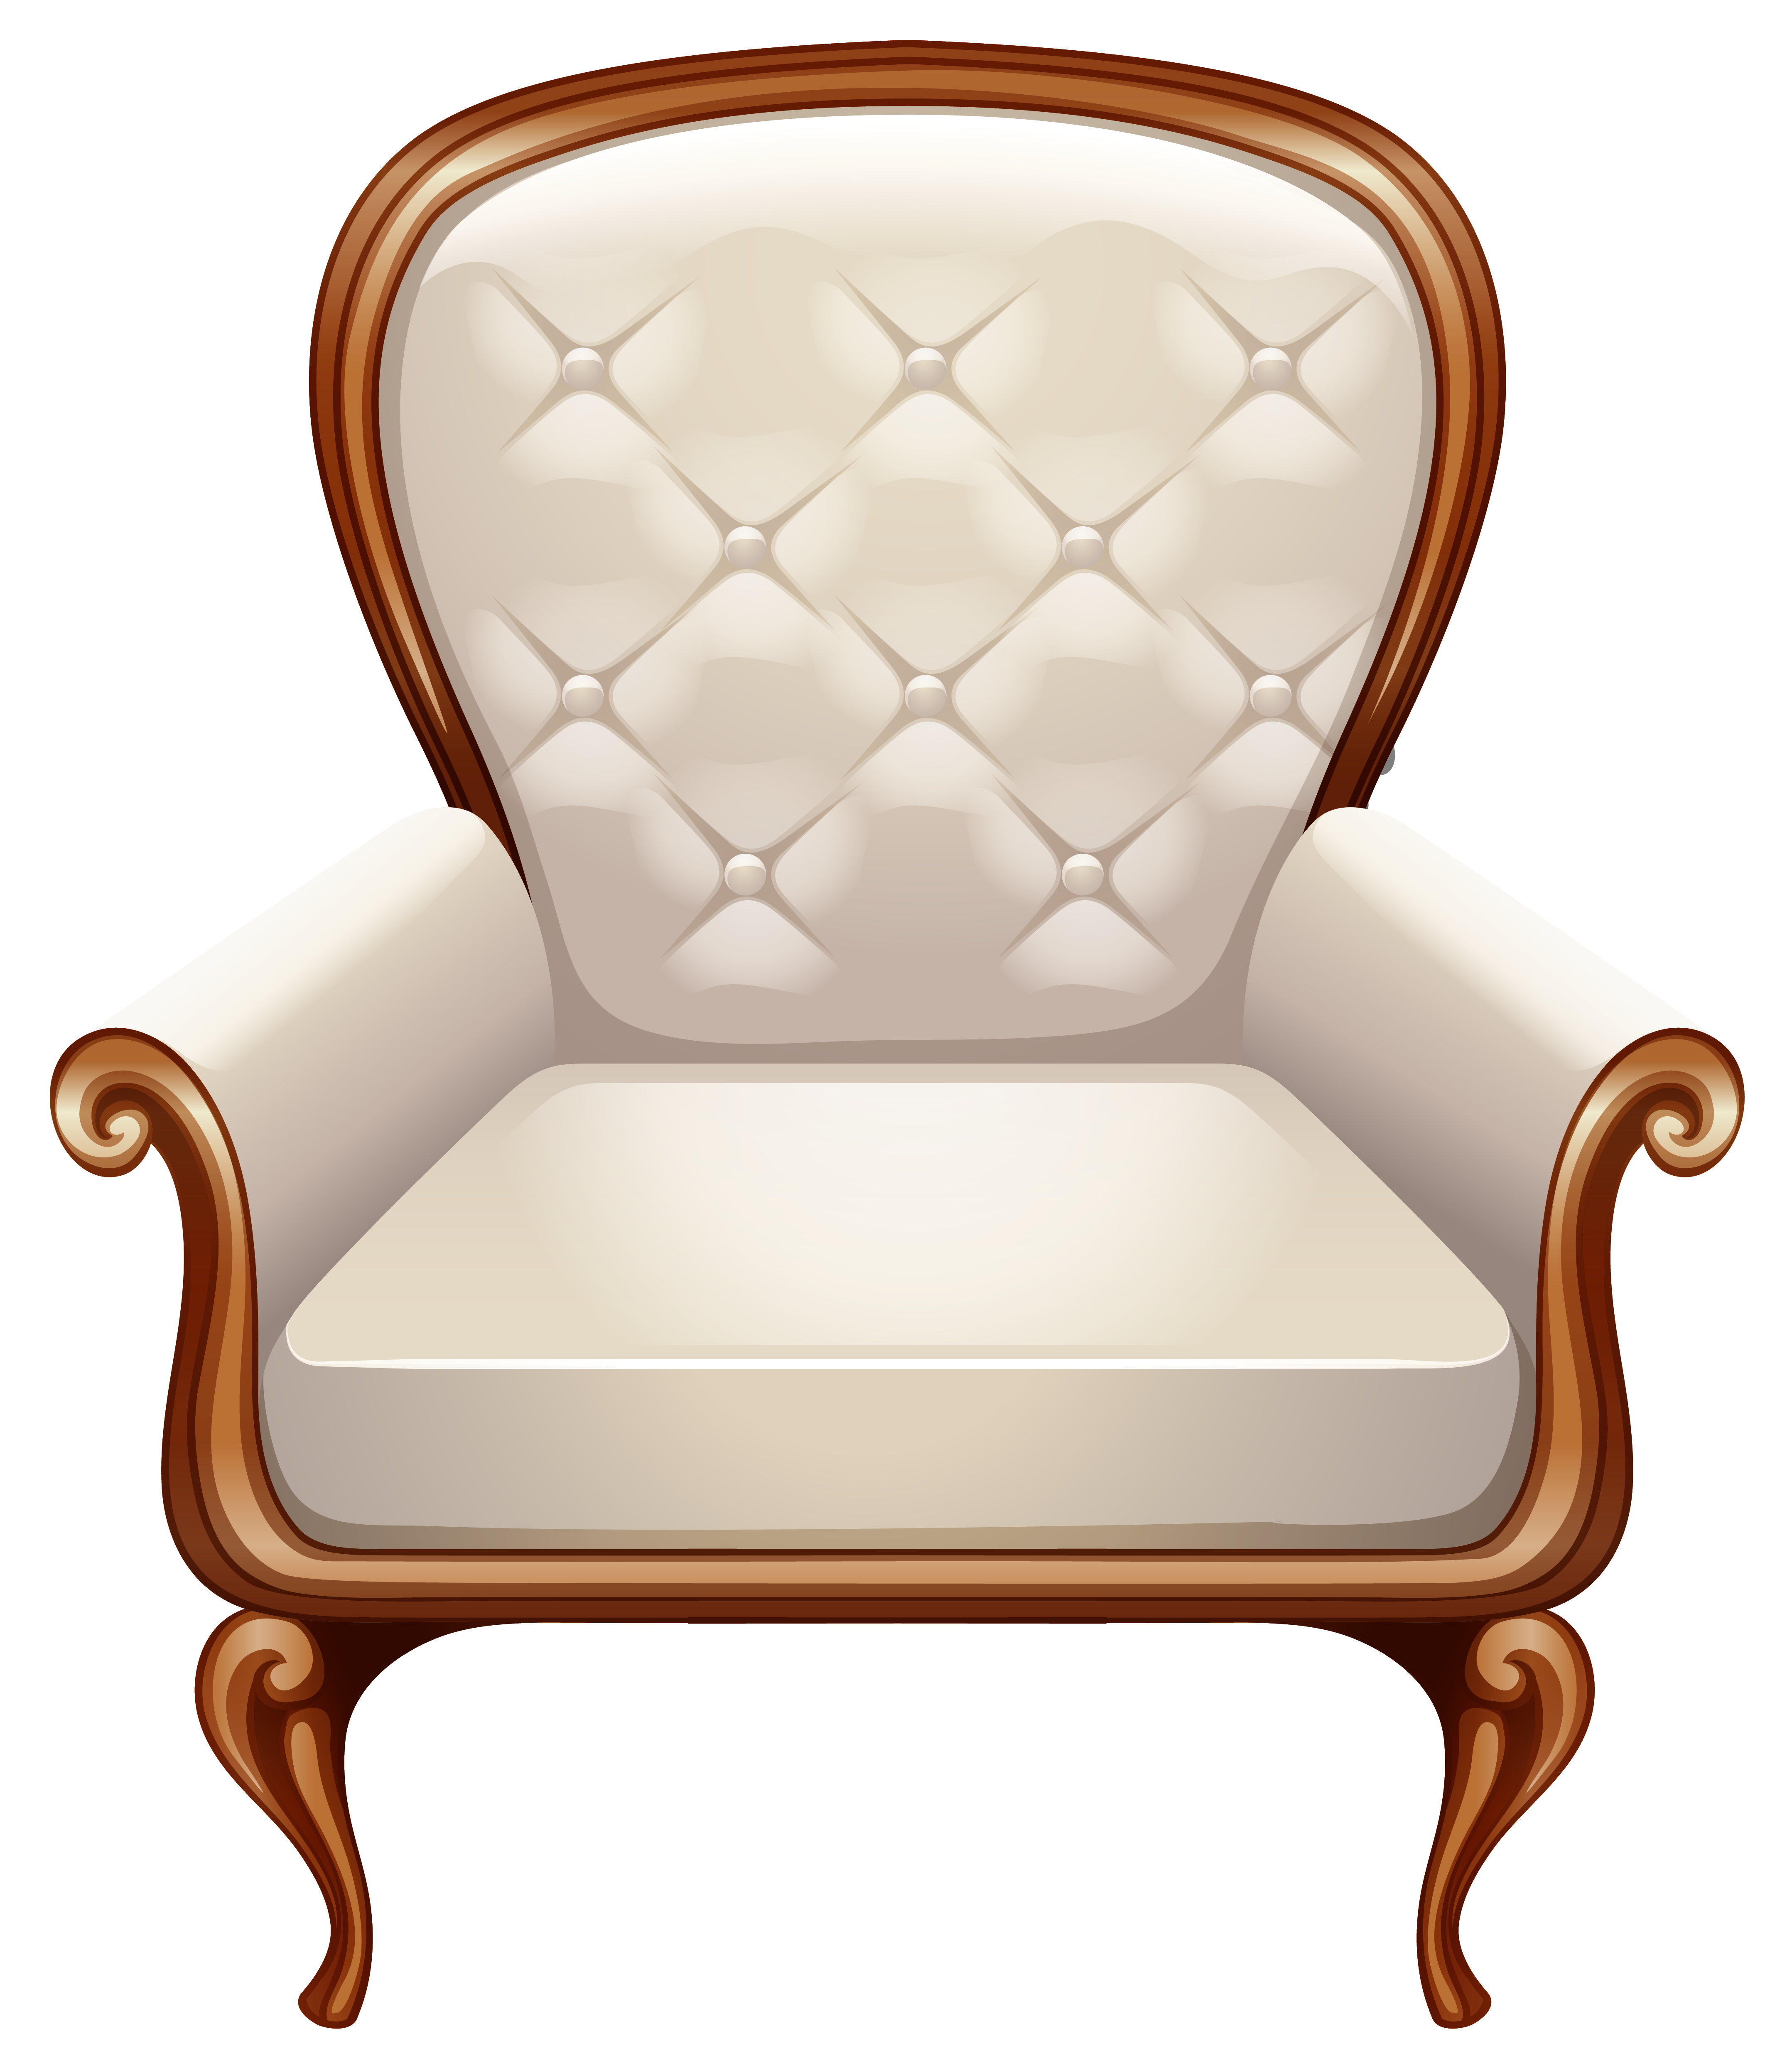 Chair PNG - 3203